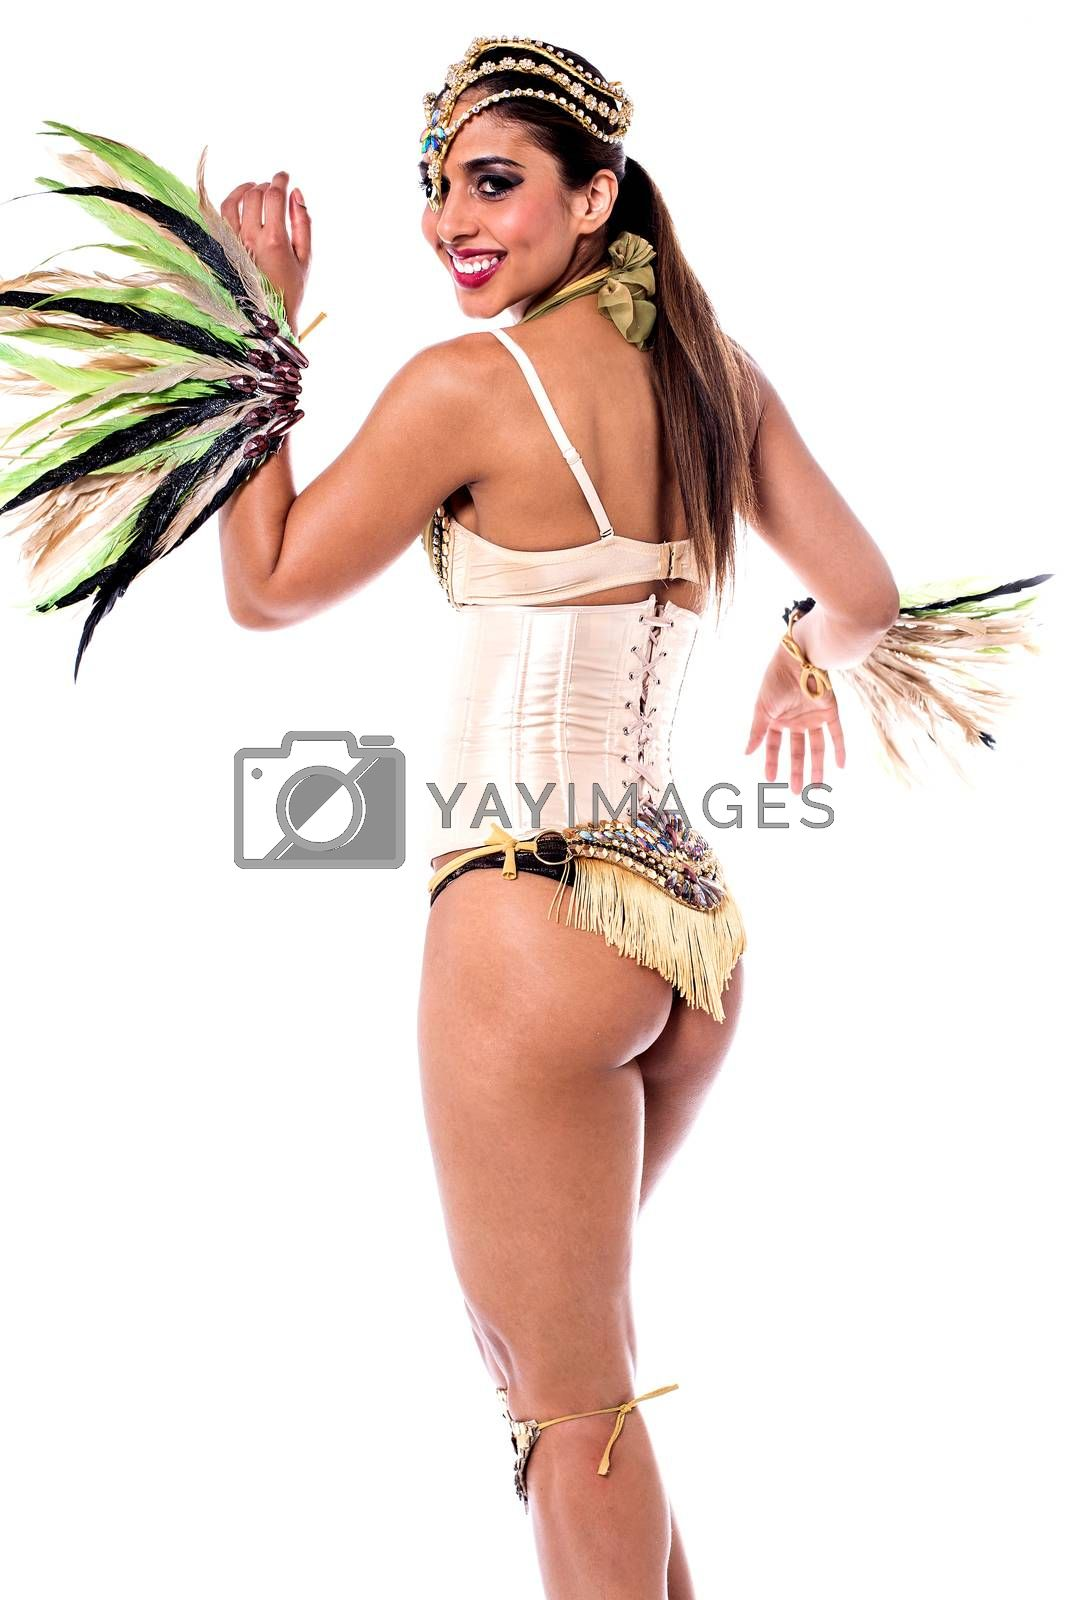 Pretty samba dancer woman looking back over white